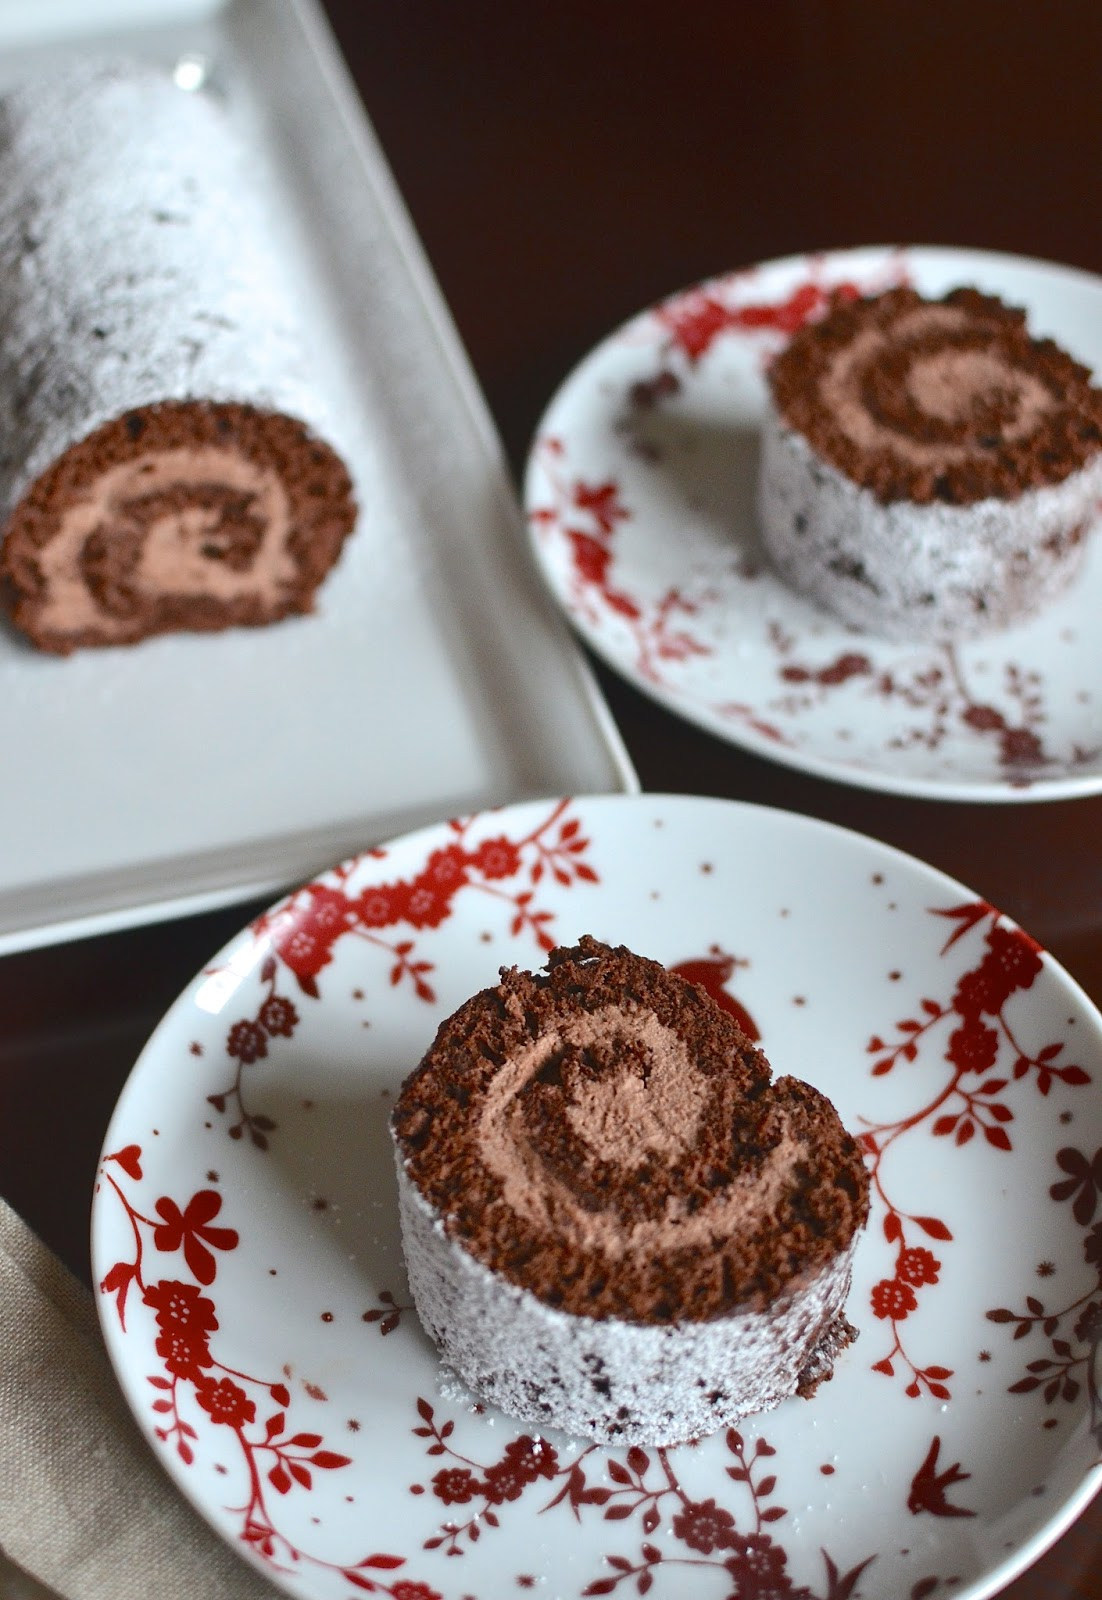 Playing with Flour: Chocolate roll cake with mocha cream filling